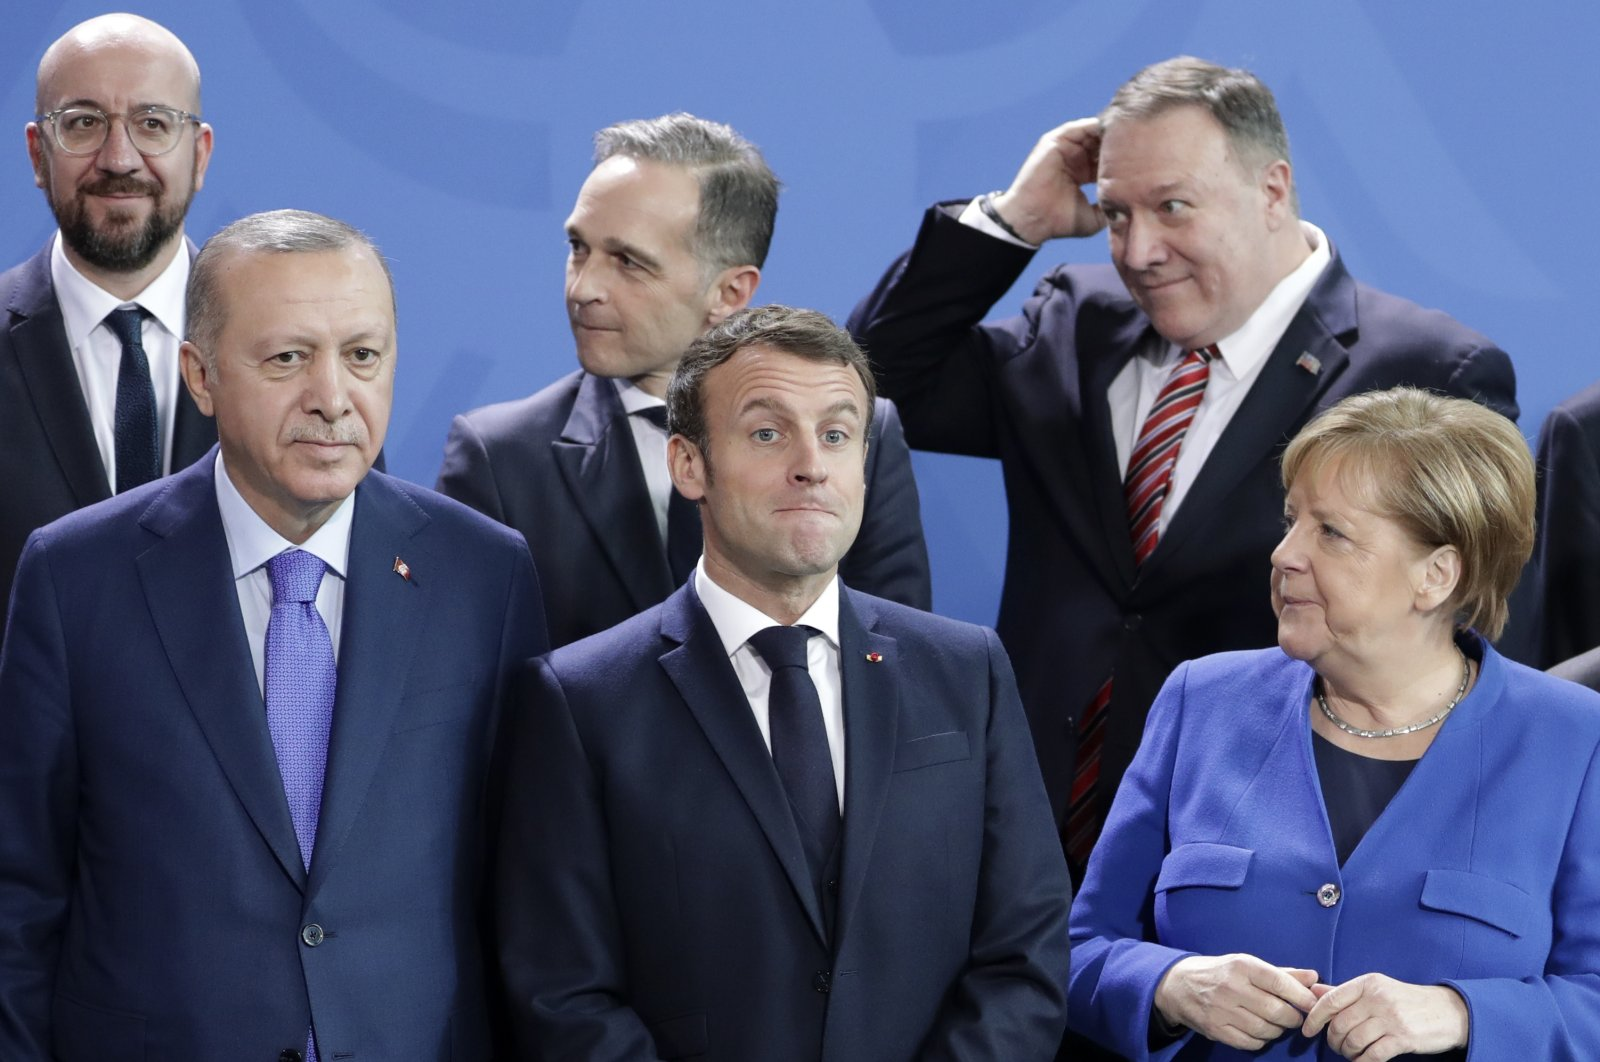 In this Sunday, Jan. 19, 2020 file photo, German Chancellor Angela Merkel, front right, speaks with French President Emmanuel Macron, front center, and Turkish President Recep Tayyip Erdoğan during a group photo at a conference on Libya at the chancellery in Berlin, Germany. (AP Photo)